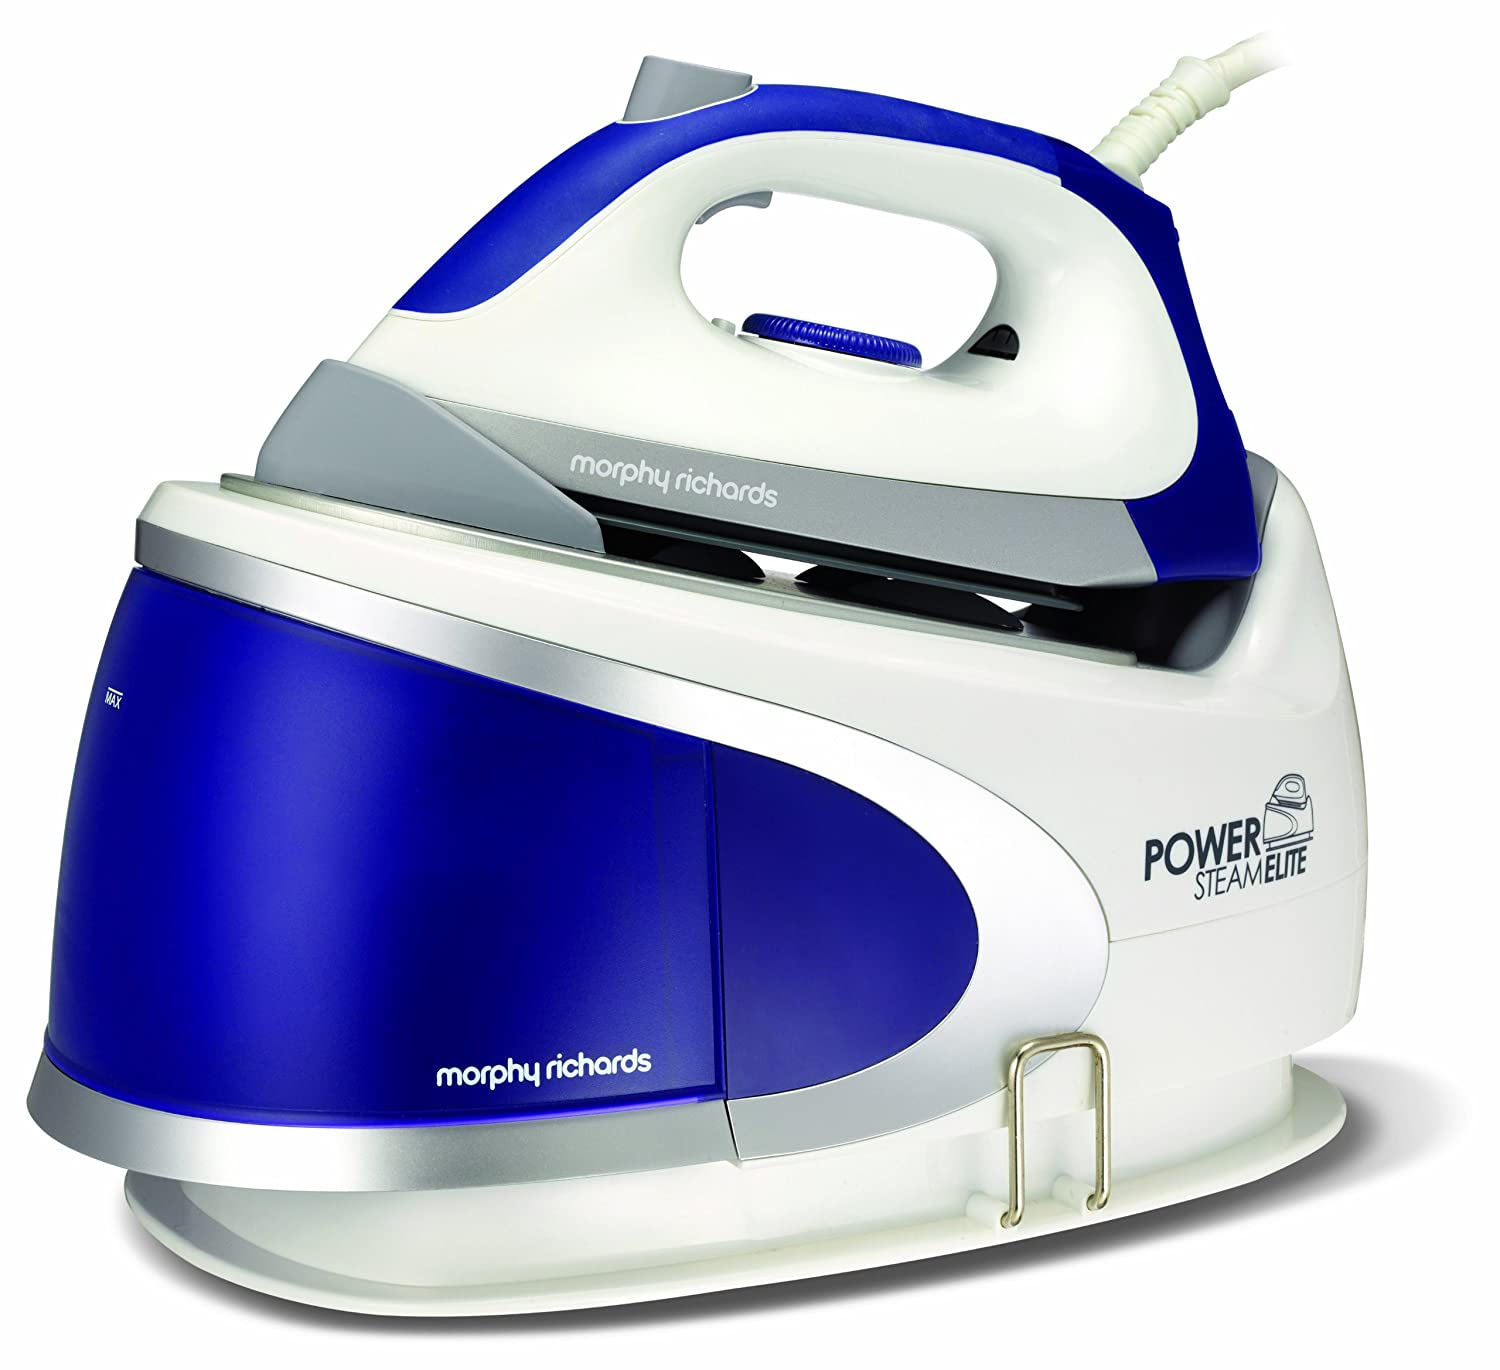 Morphy Richards Power Steam Elite Steam Generator Iron 2400